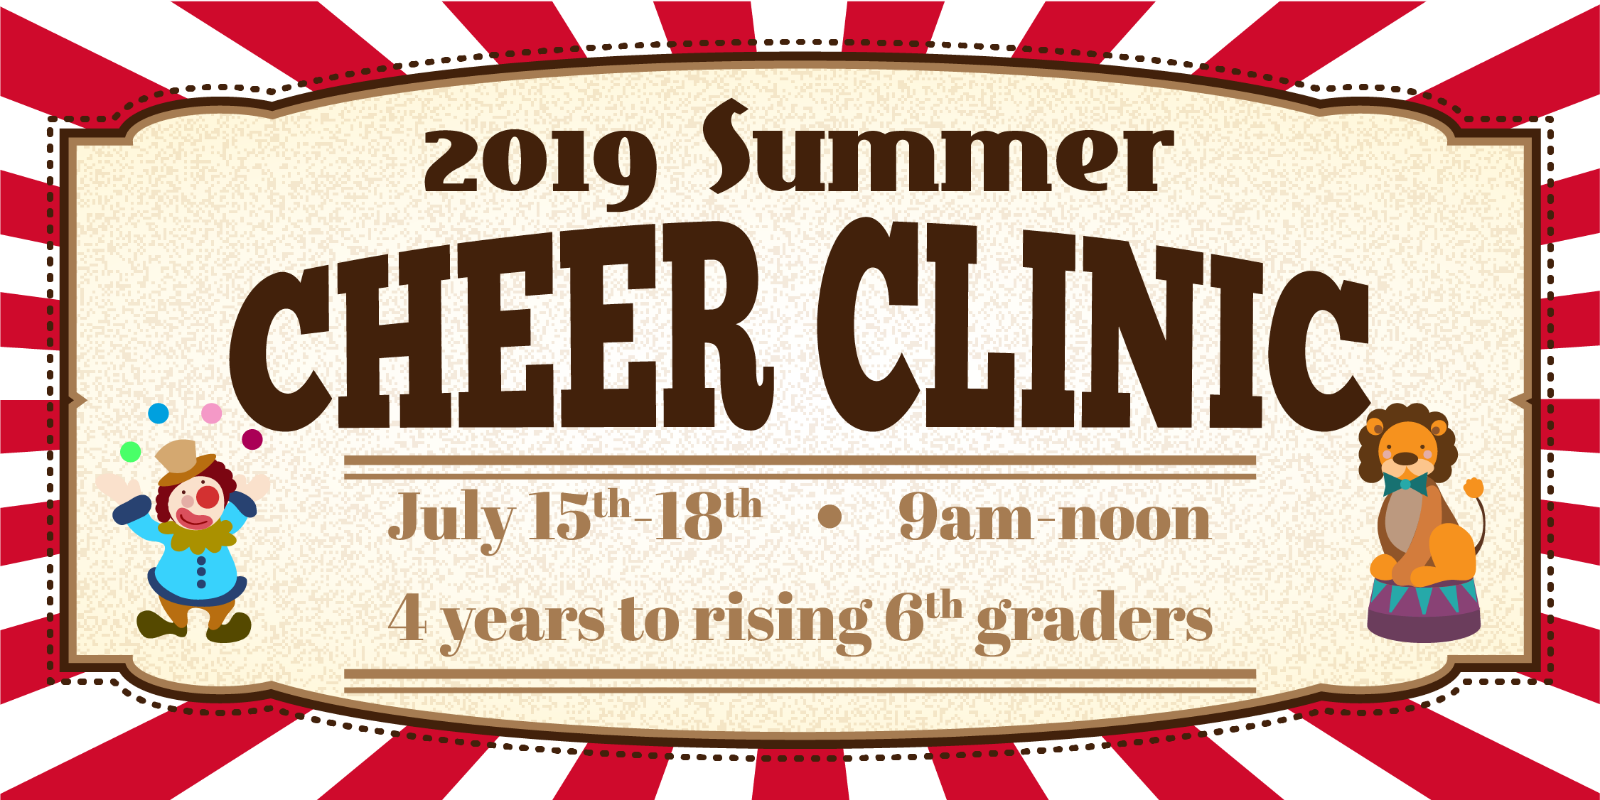 Register Now for the 2019 Summer Cheer Clinic